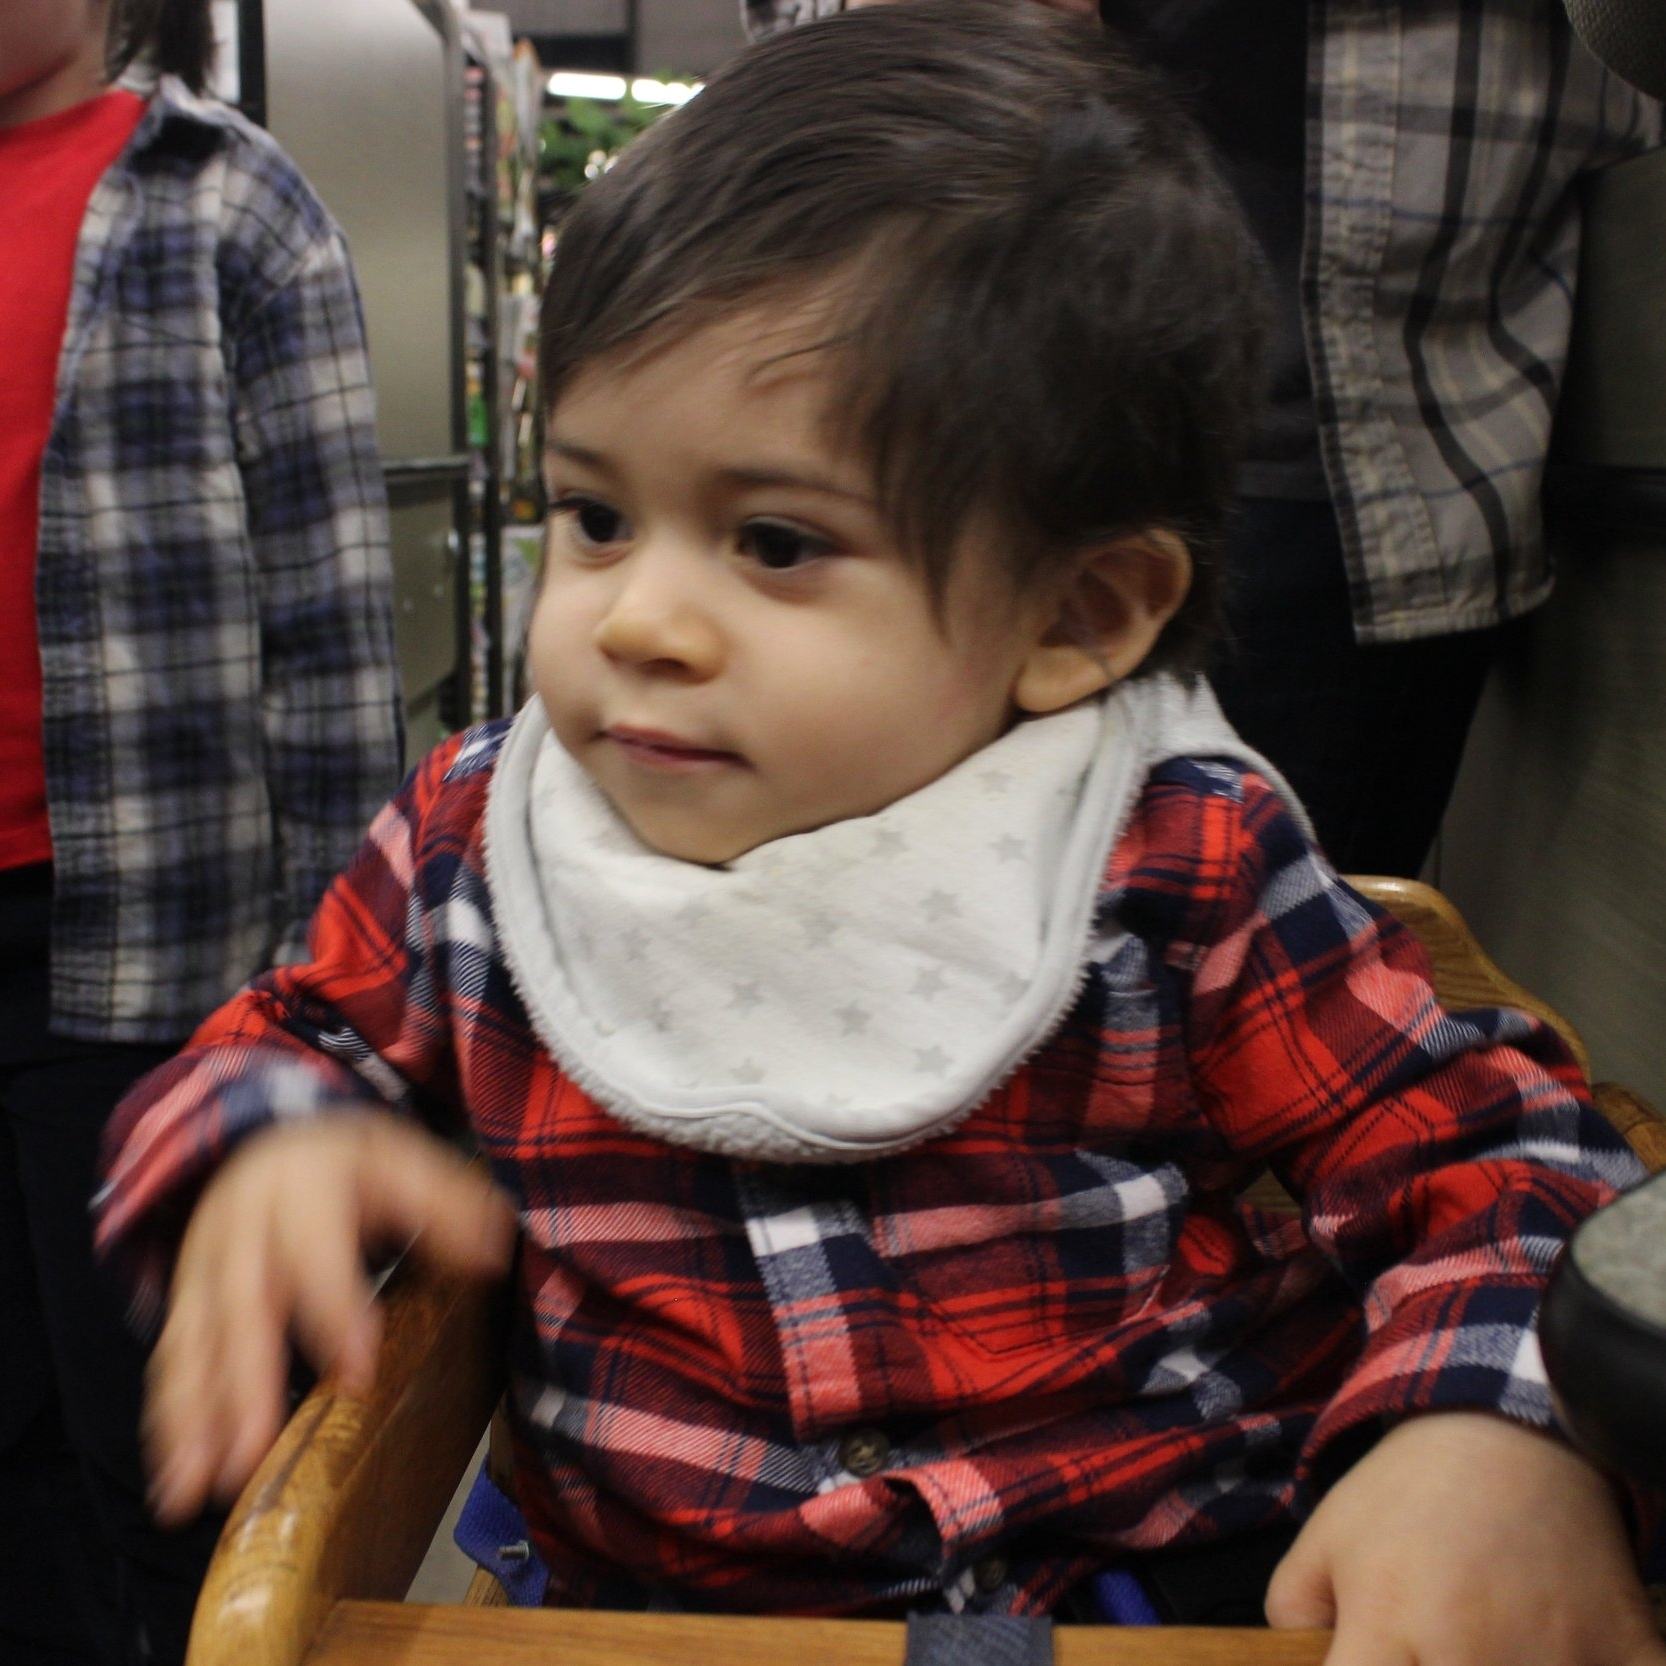 Orion Rivera-Colón - A tiny man trapped in a baby's body. Loves to laugh, explore, & destroy.